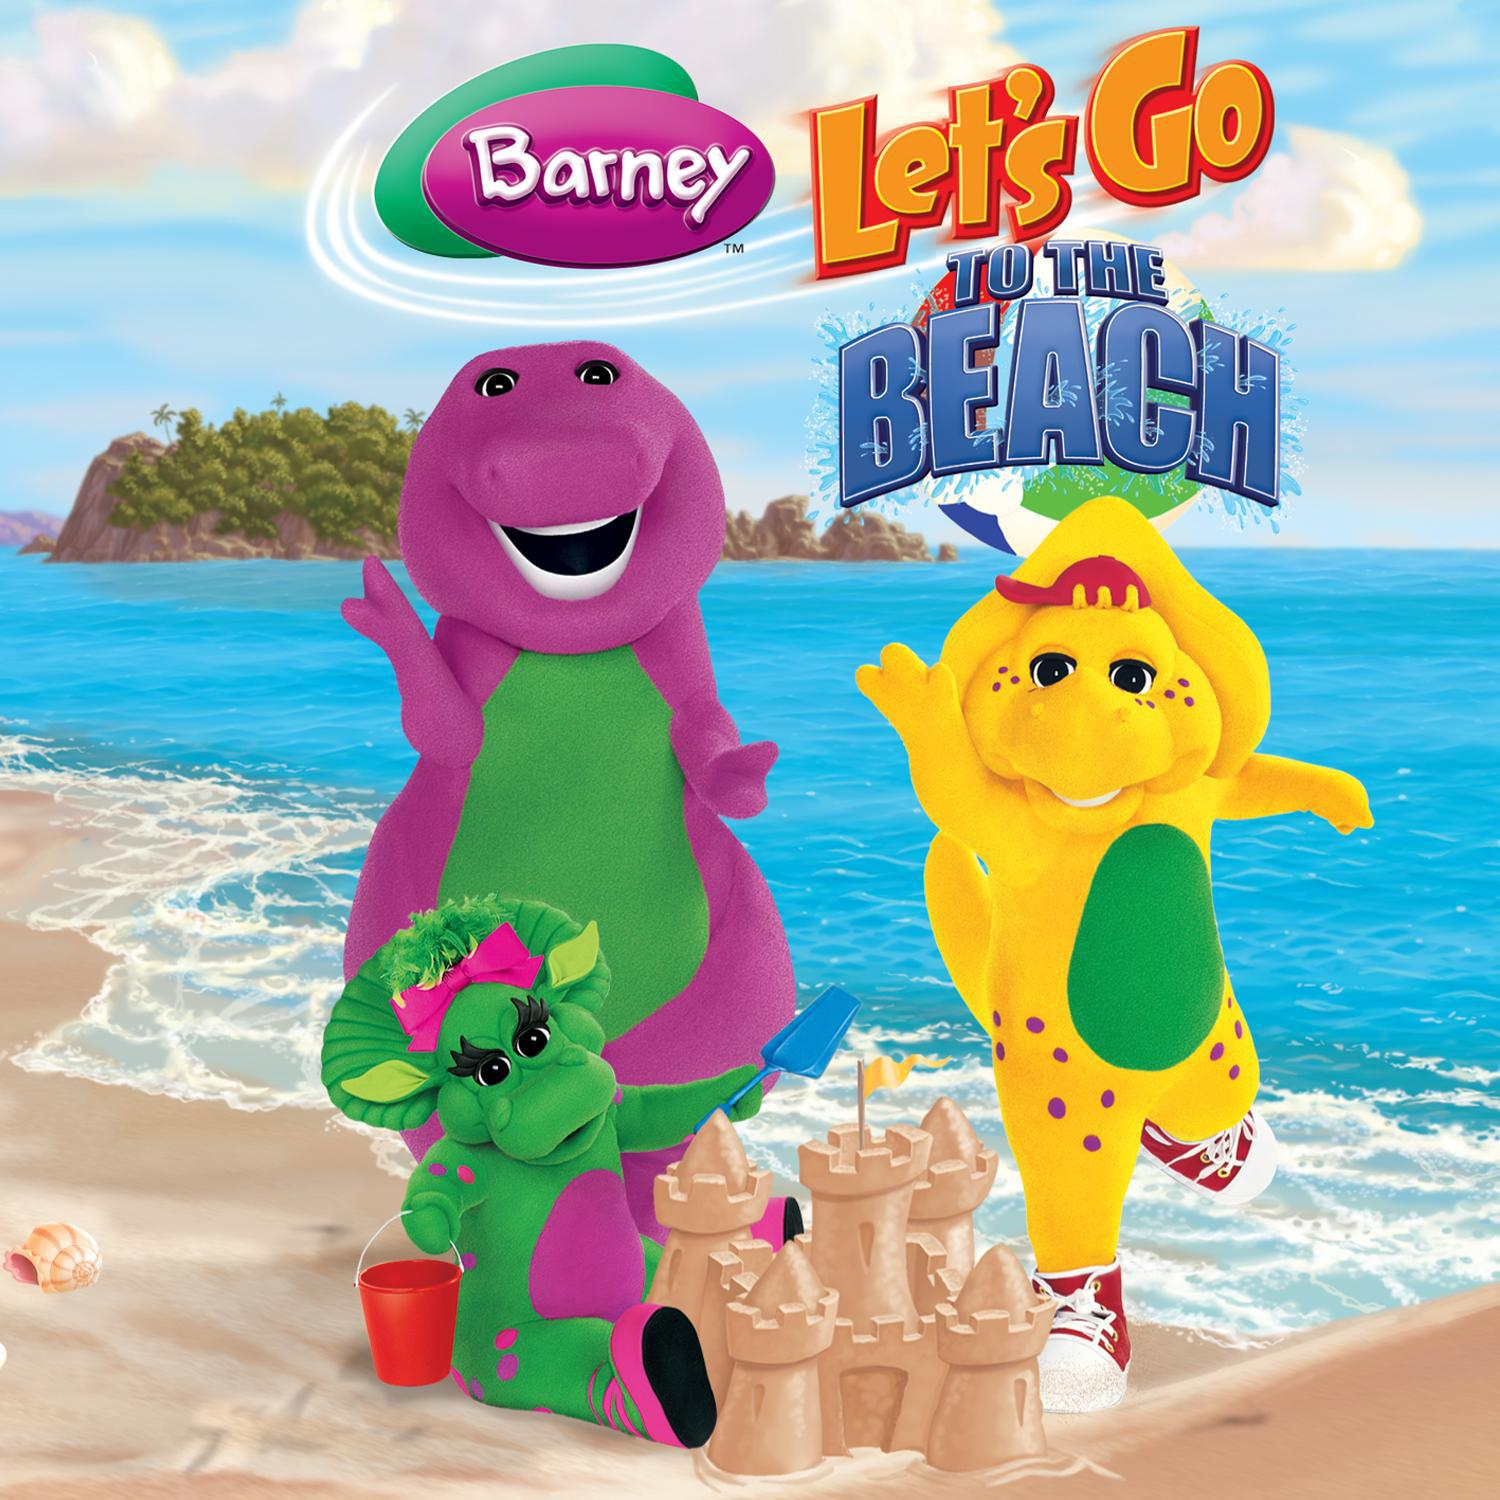 Let's Go To The Beach (Soundtrack)